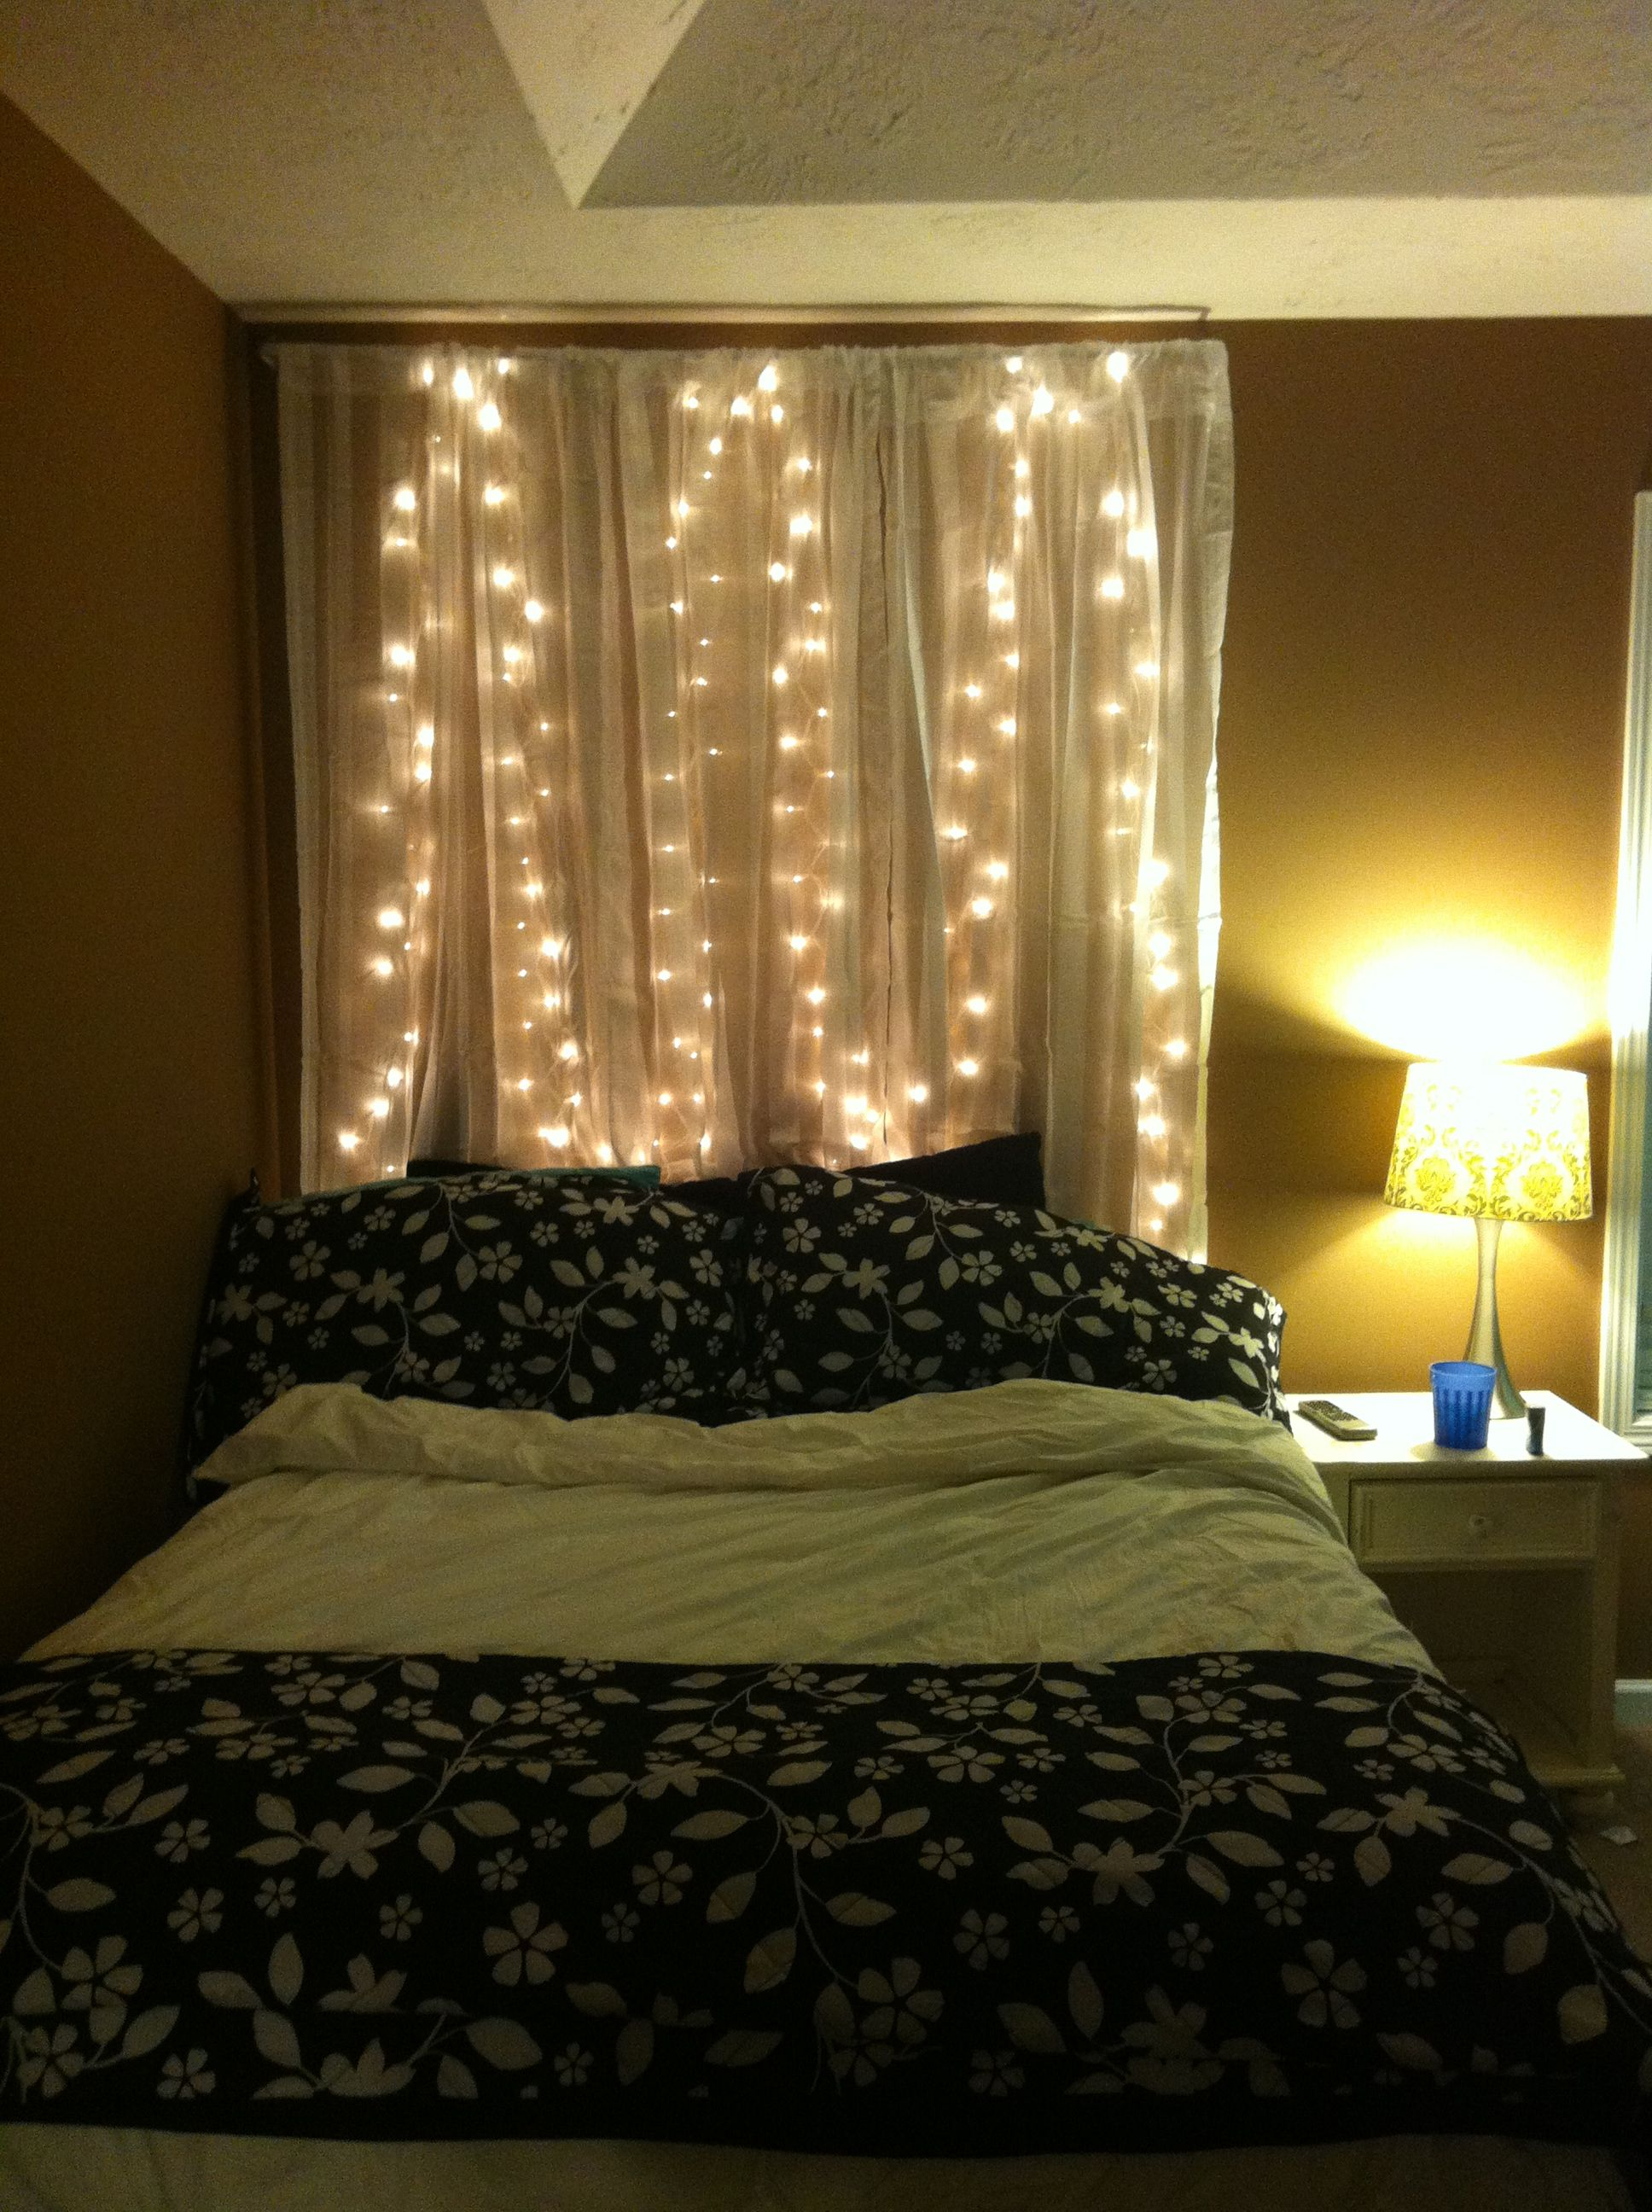 Over The Bed Light Fixtures My Bed Curtains With Lights Above Bed Instead Of